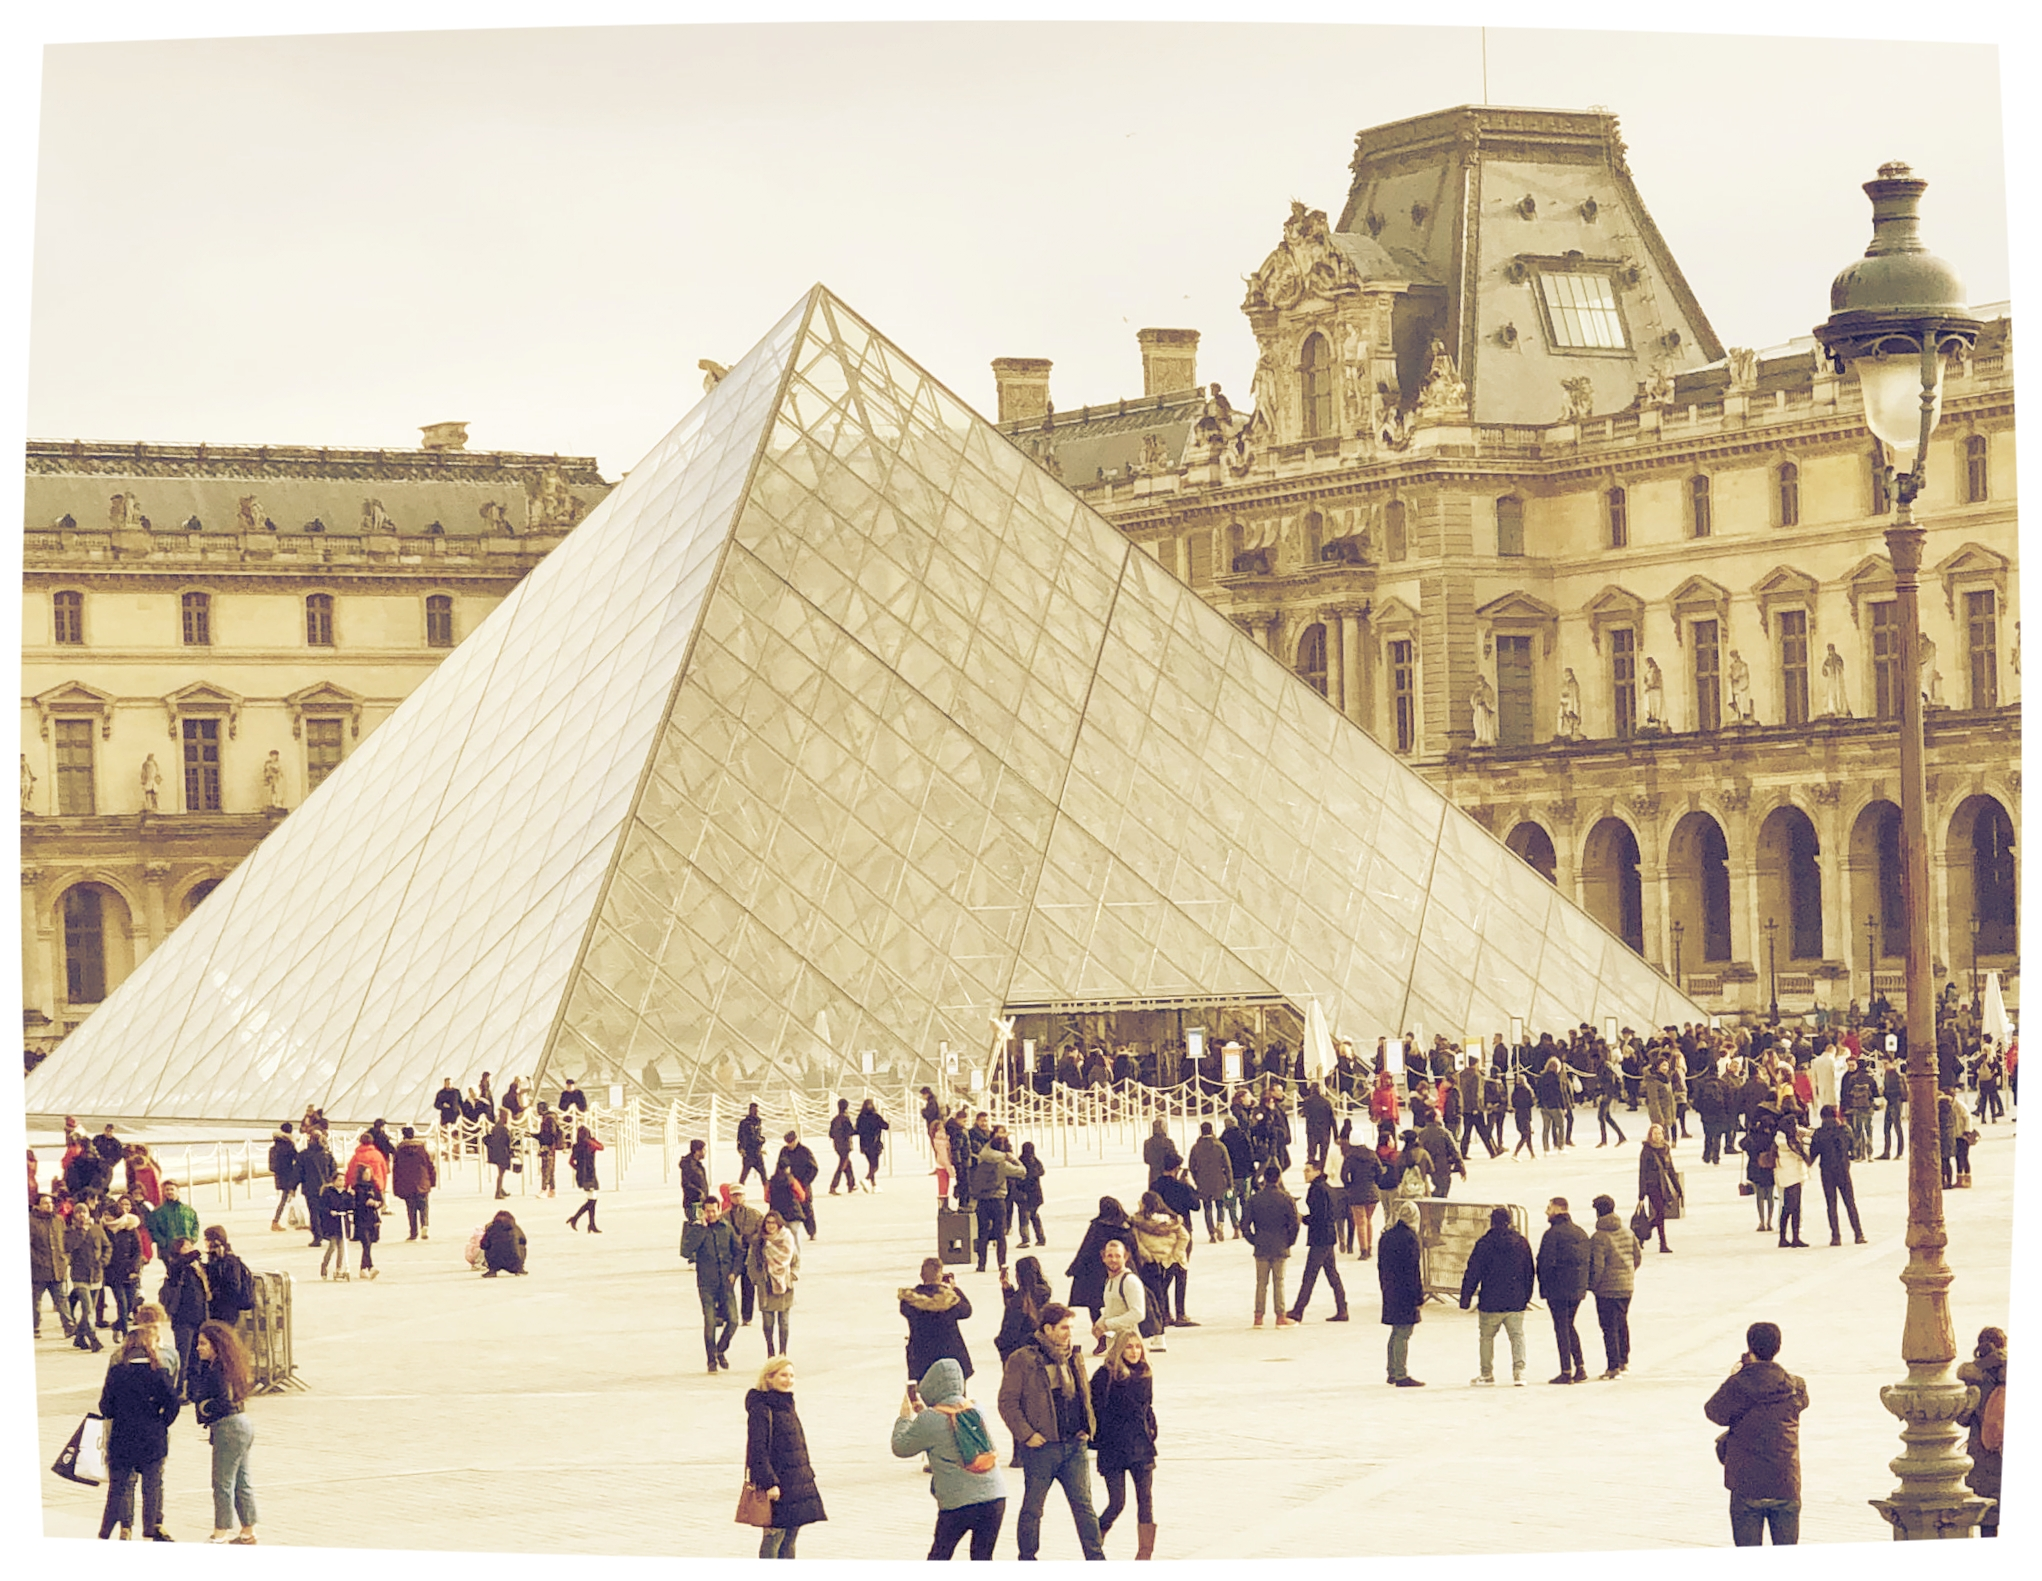 Louvre Museum Entrance Pyramid